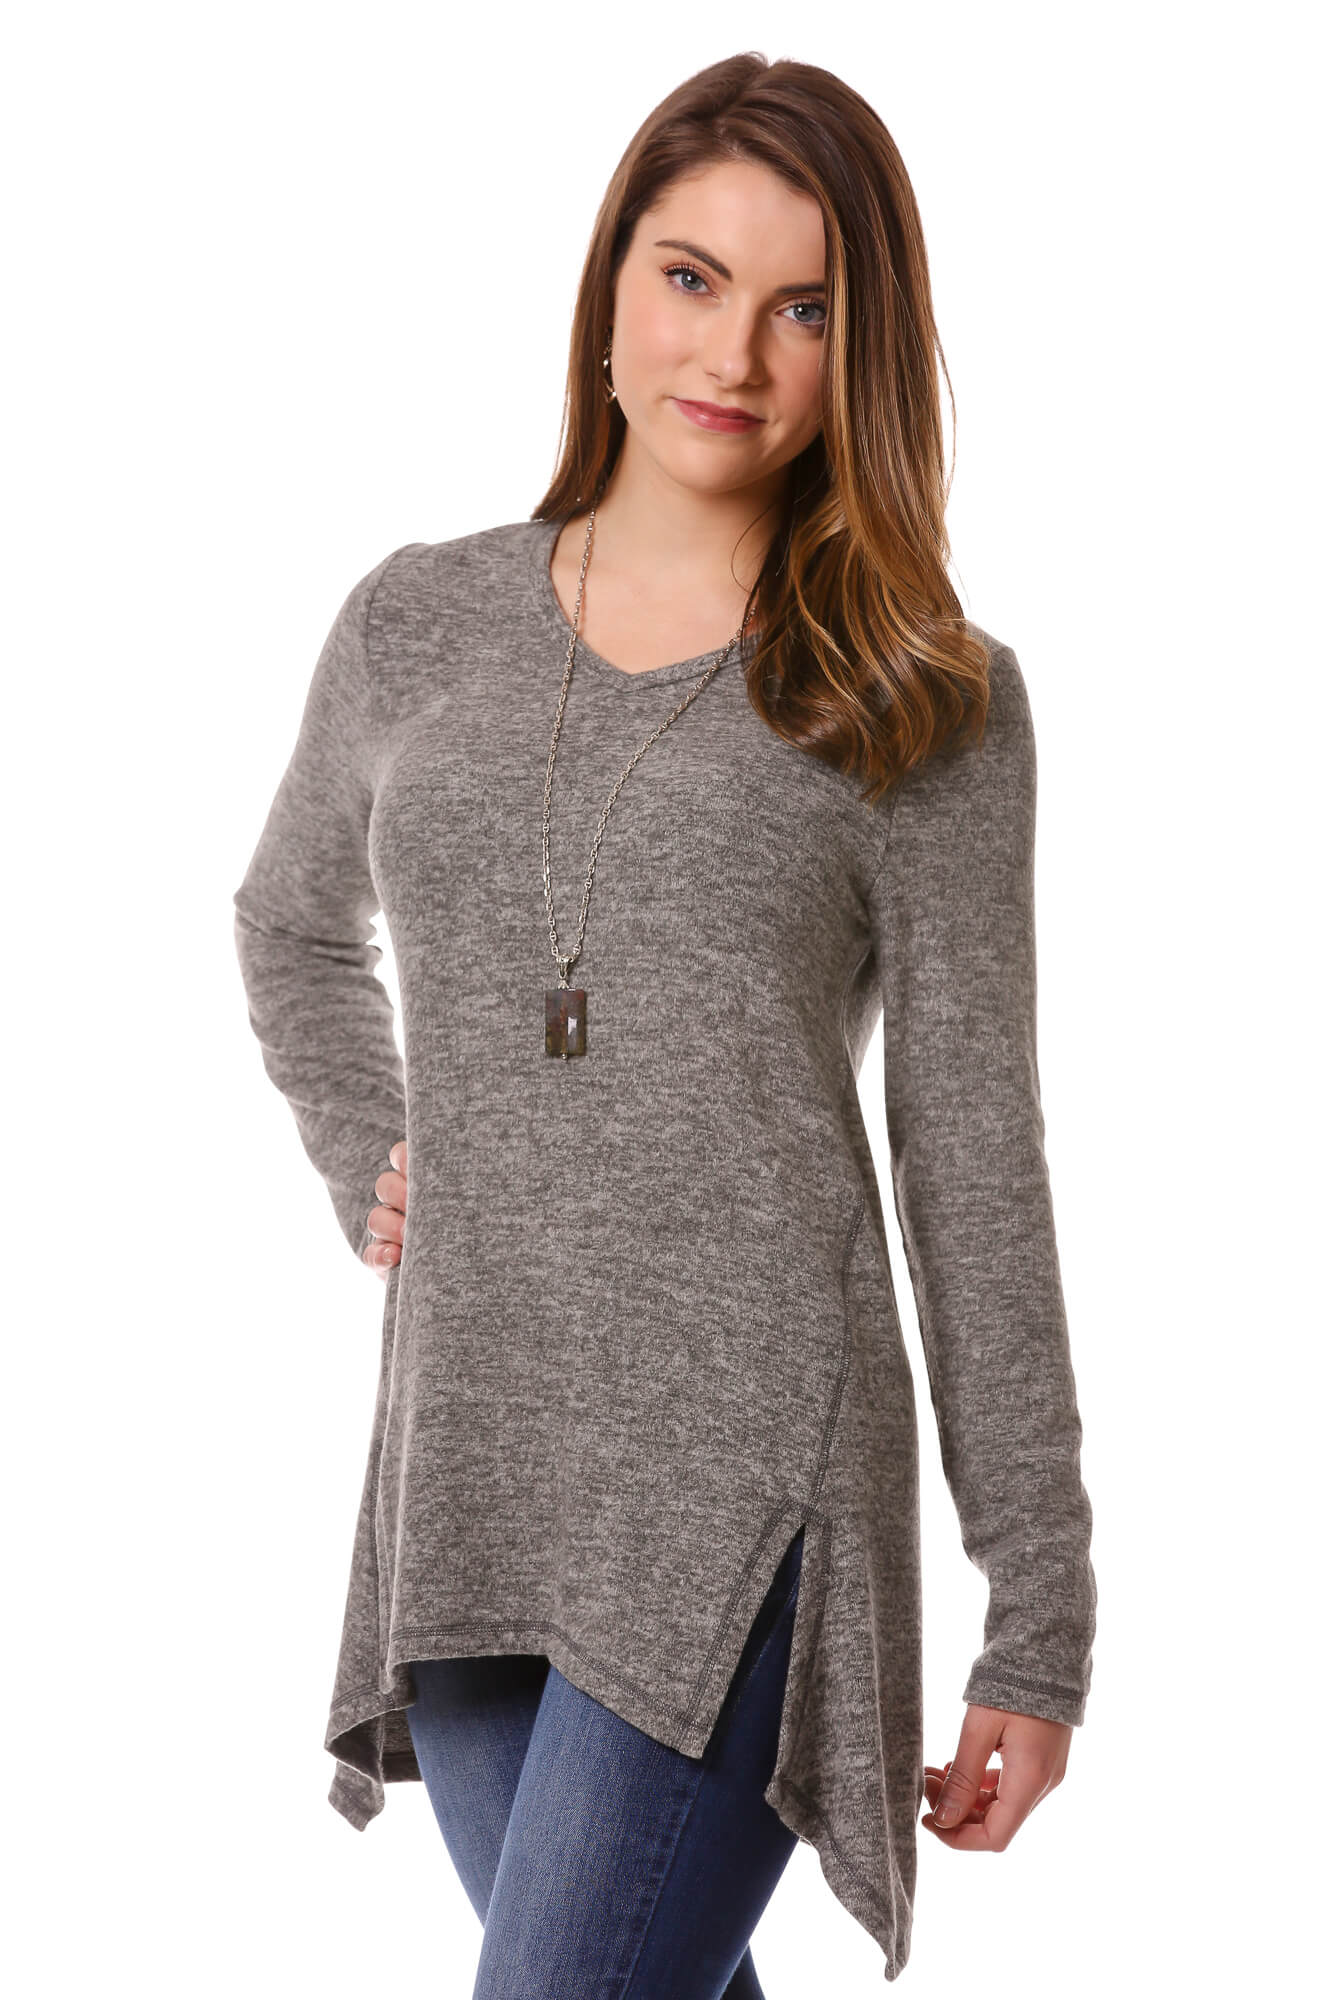 Women's Charcoal Soft Knit Long Sleeve Tunic Top | Cozy Top For Winter | Neesha